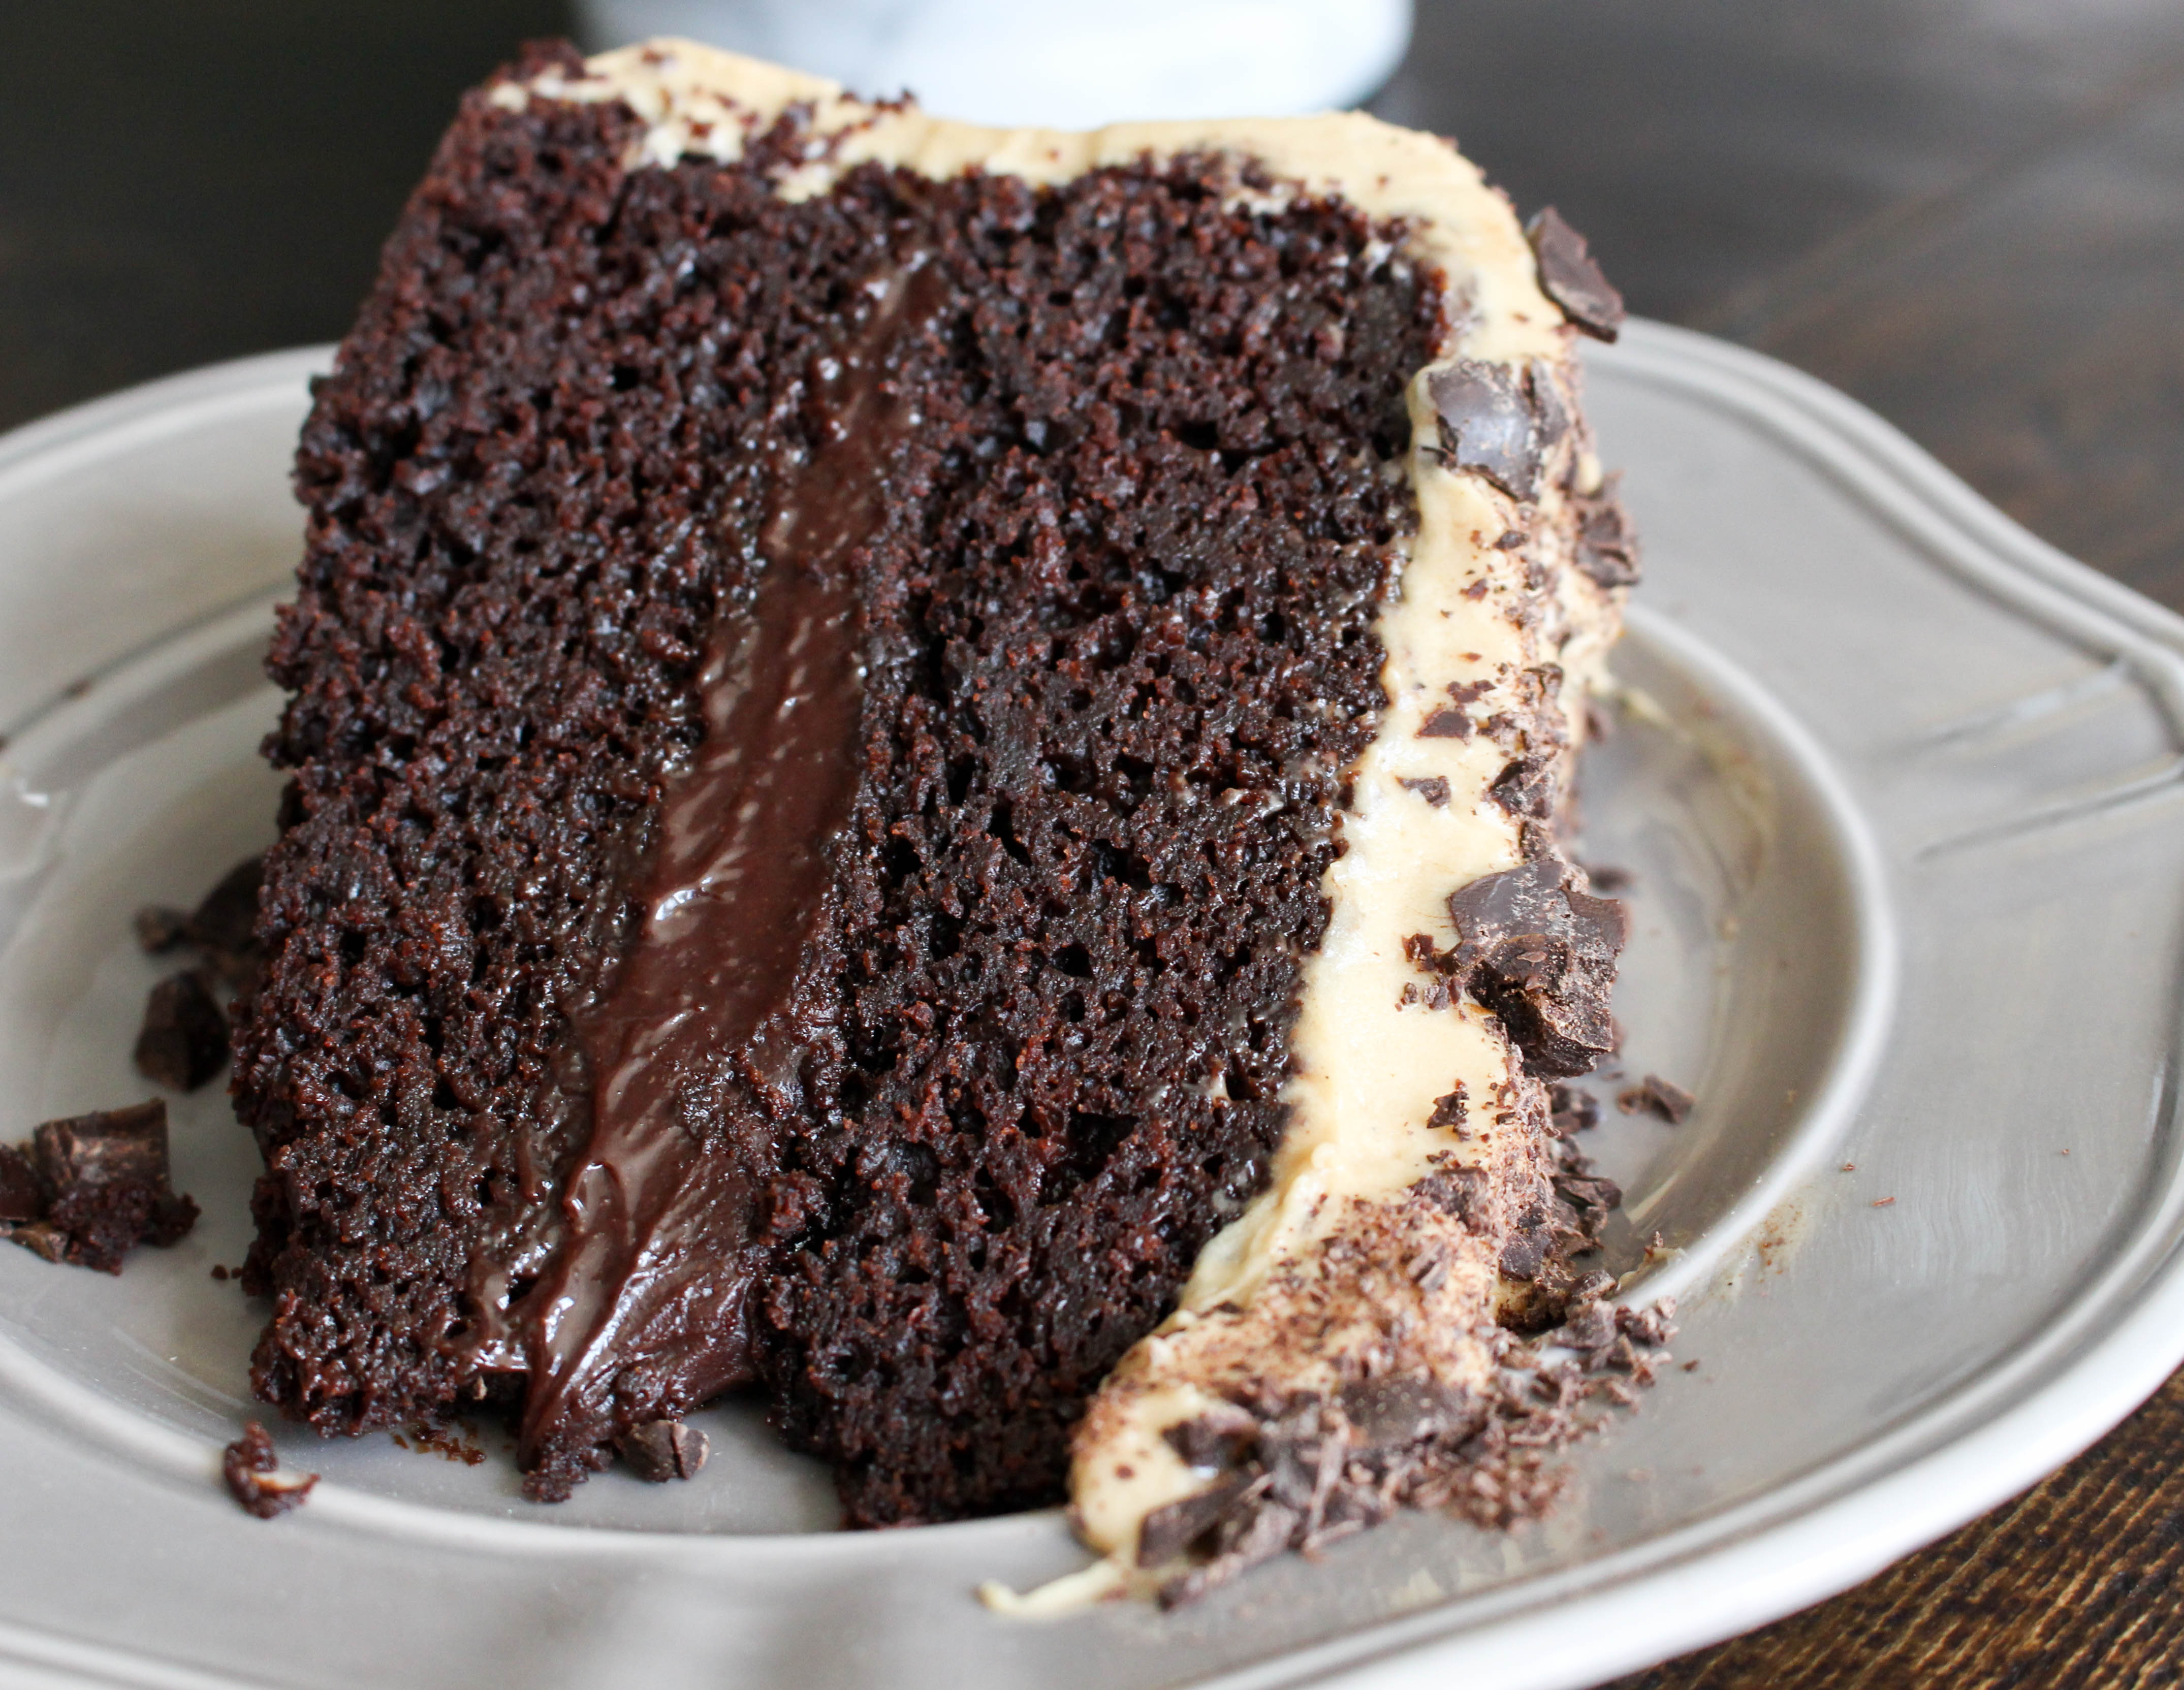 Layered Cake Recipes With Fillings: One Year: Mocha Cake With Fudge Filling & Espresso Frosting